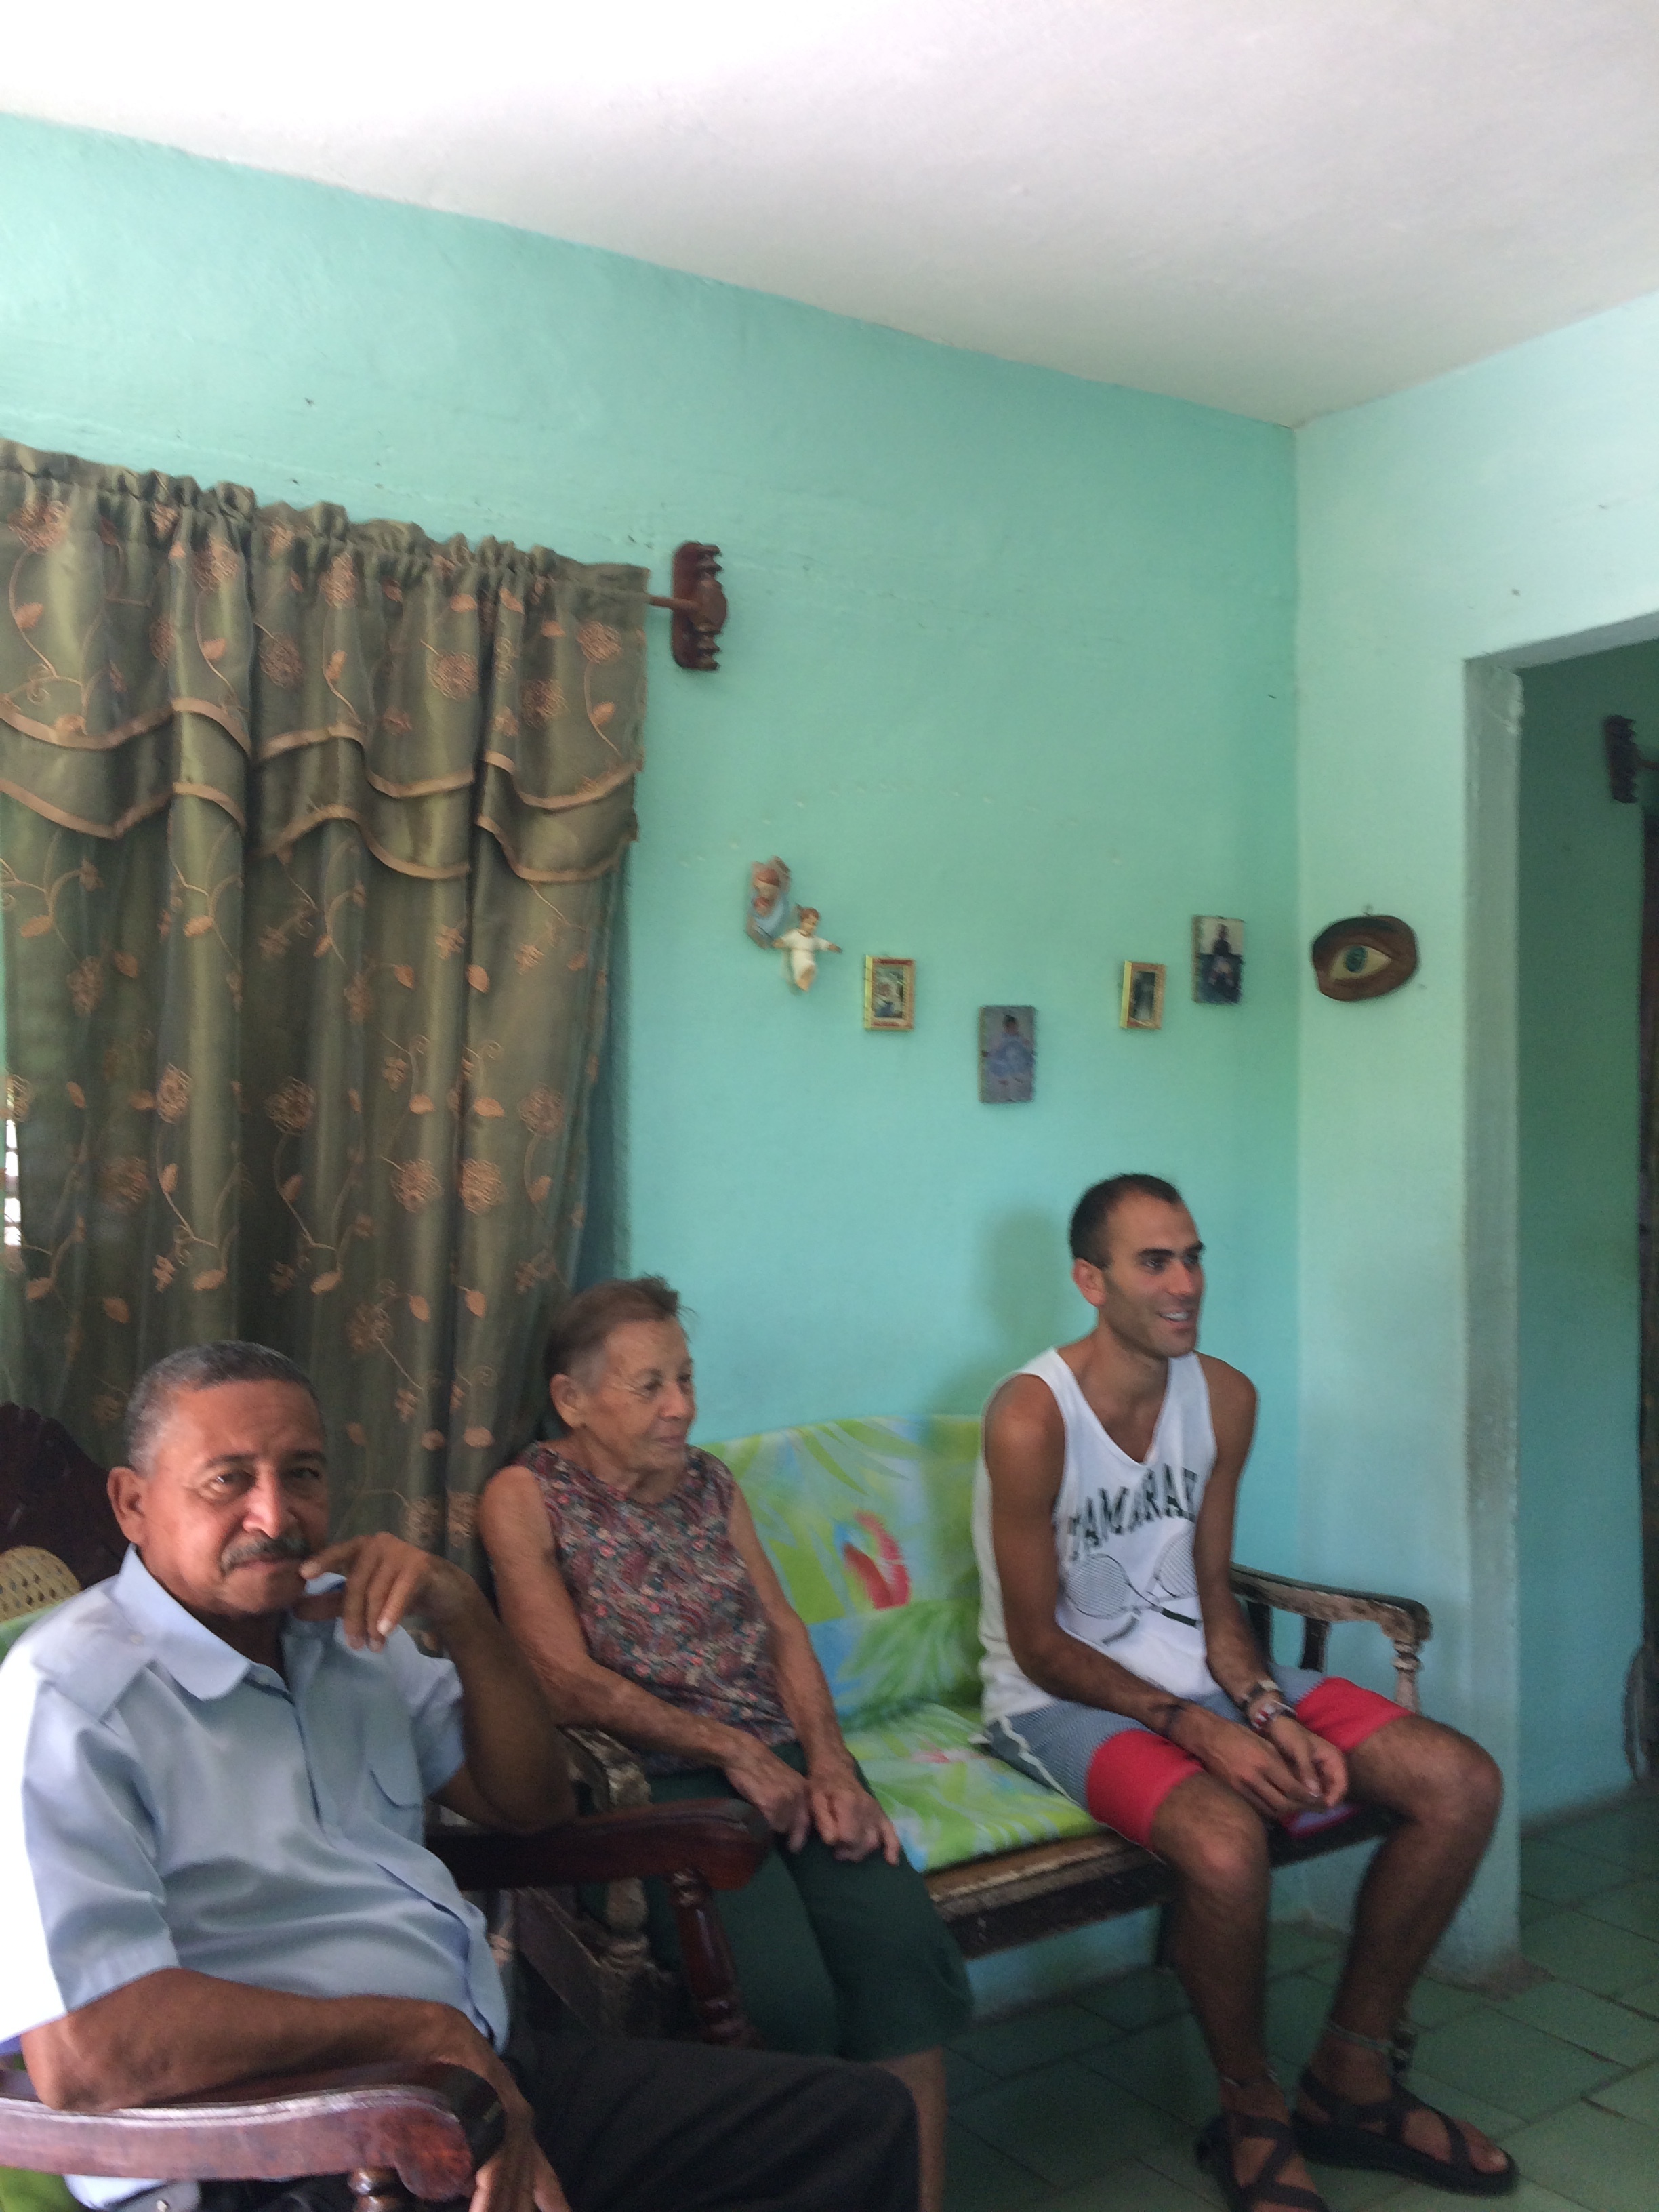 Members of Margarita's family, and my son (far right), watch the film.